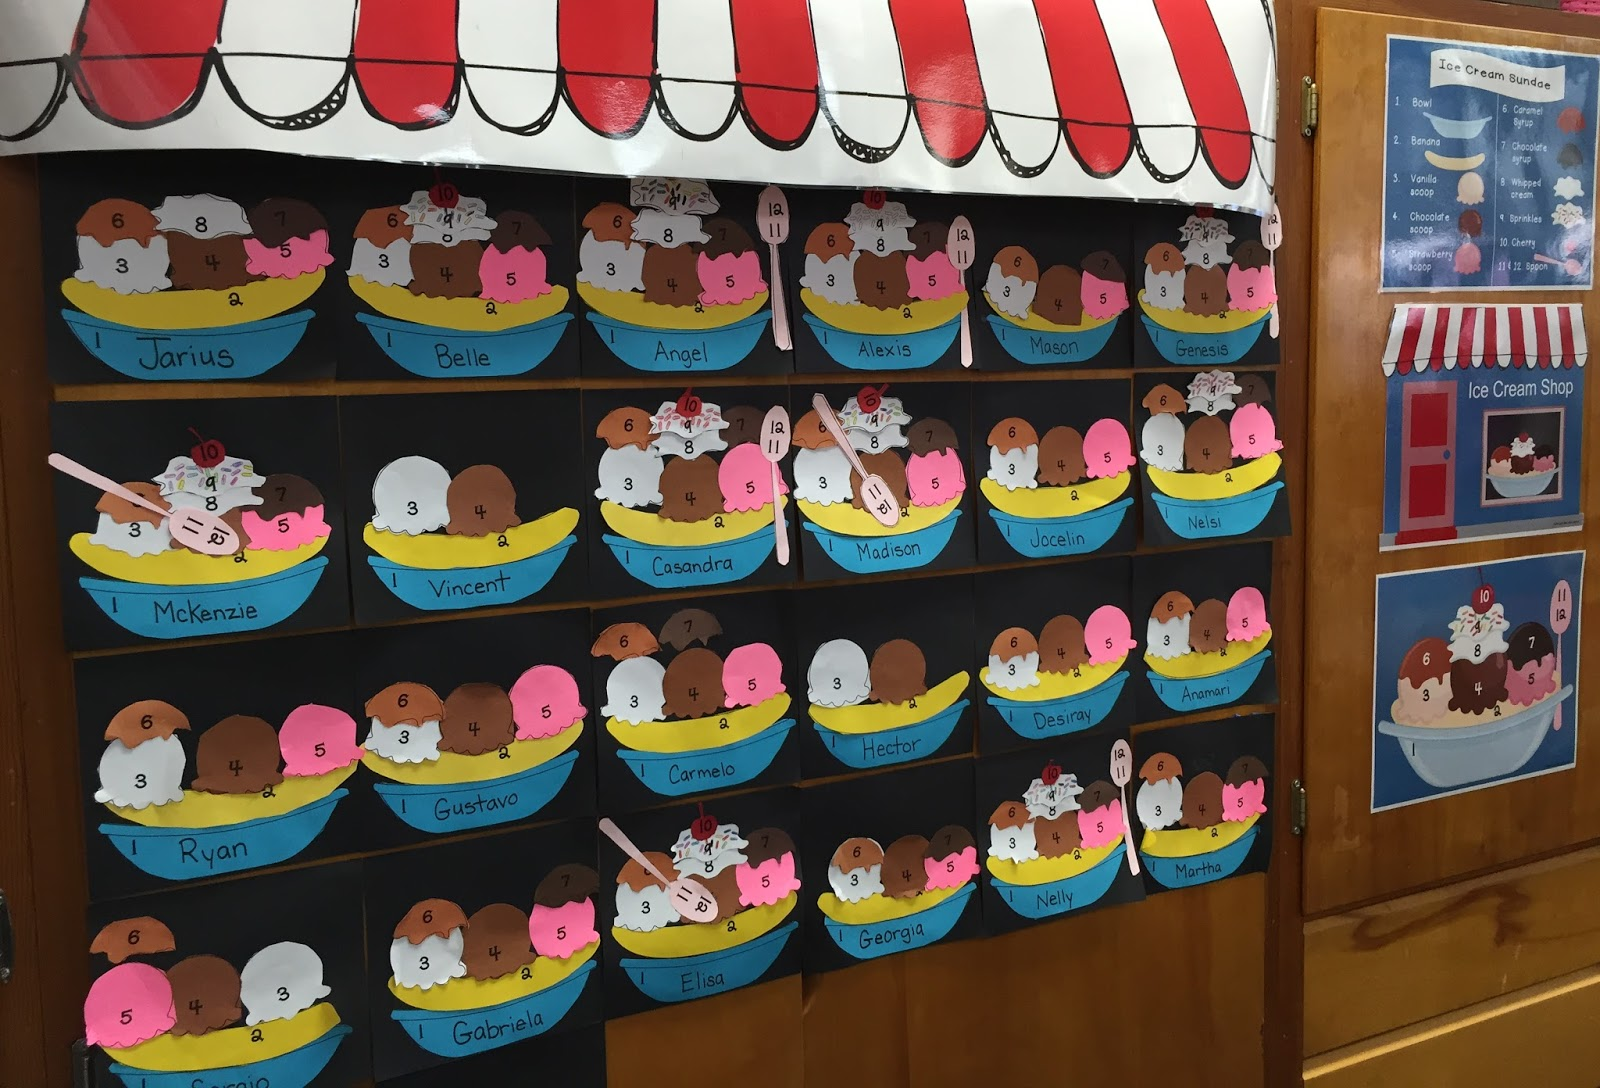 Multiplication Ice Cream Shop - Light Bulbs and Laughter